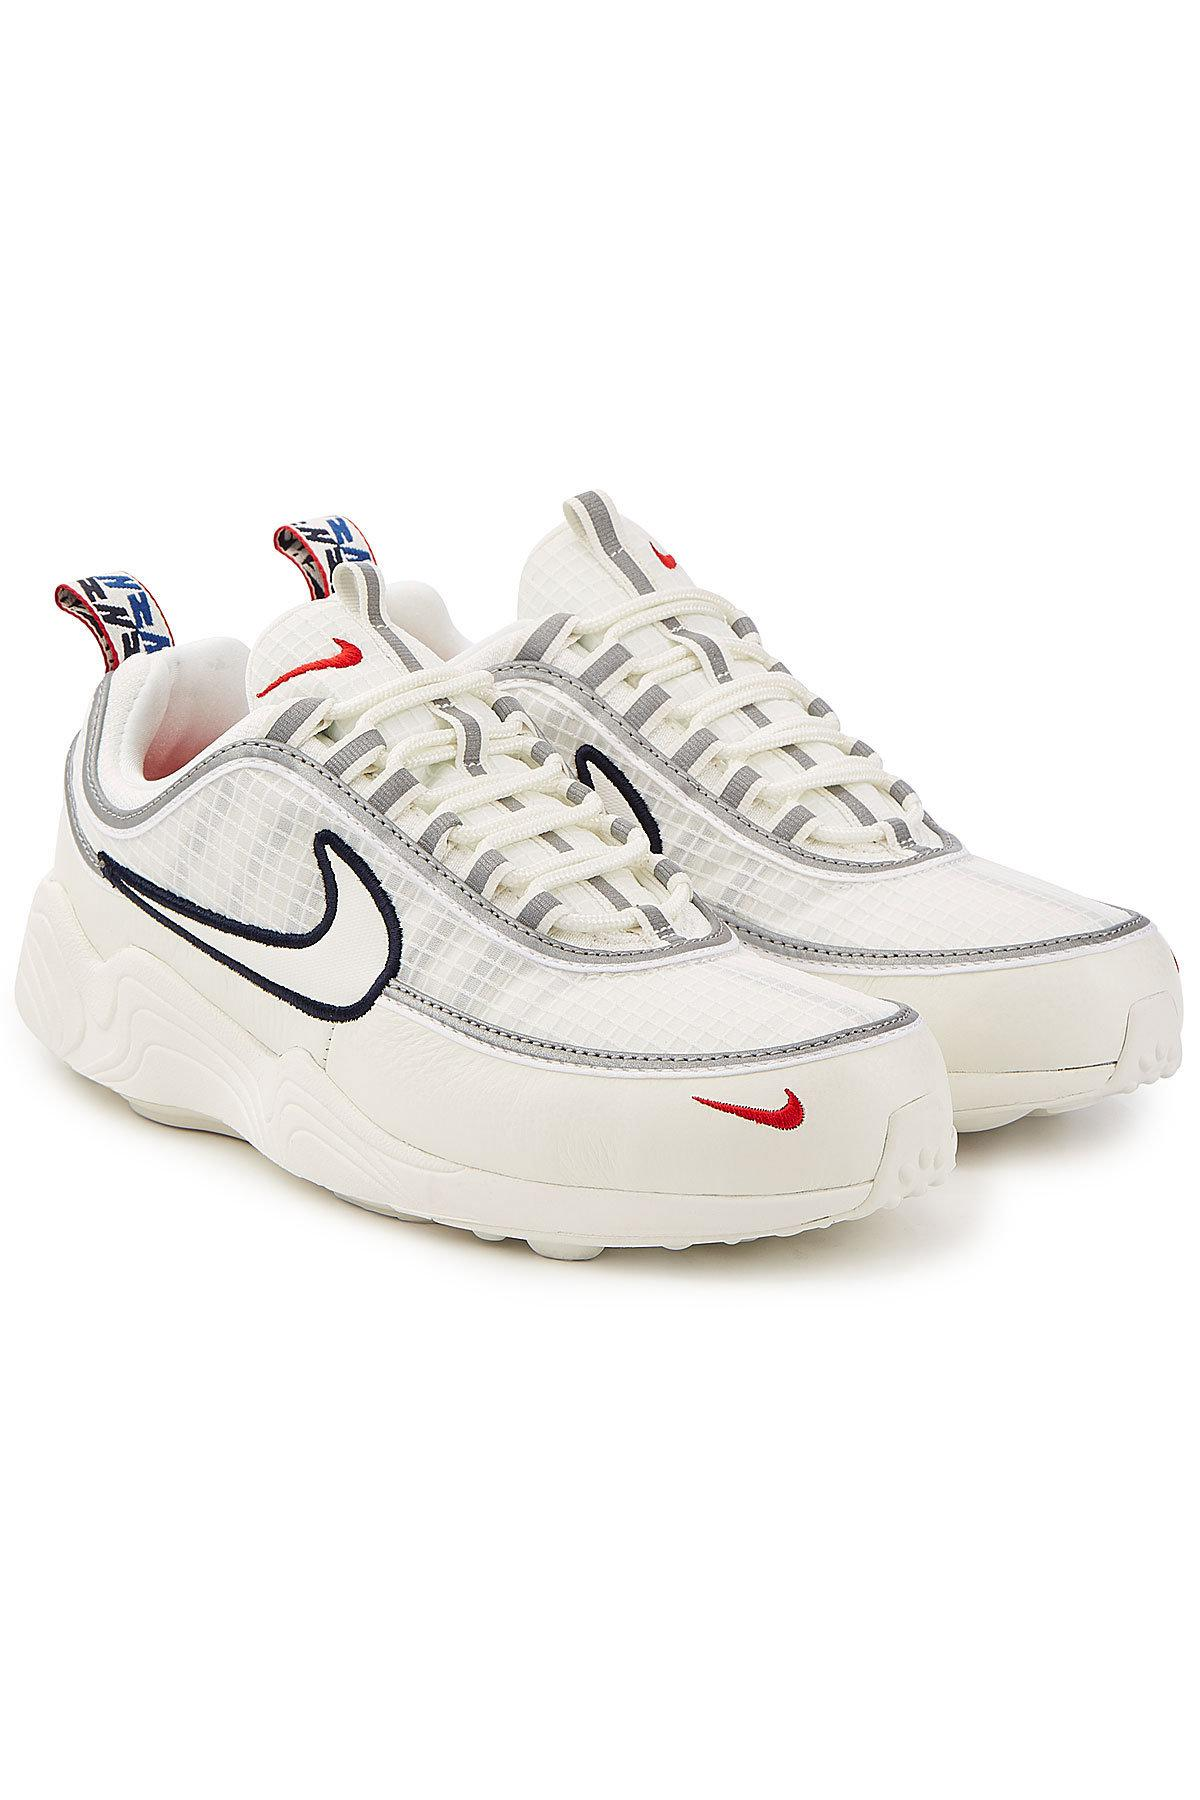 9f2cbaf4710c0 Lyst - Nike Air Zoom Spiridon Sneakers With Leather in White for Men